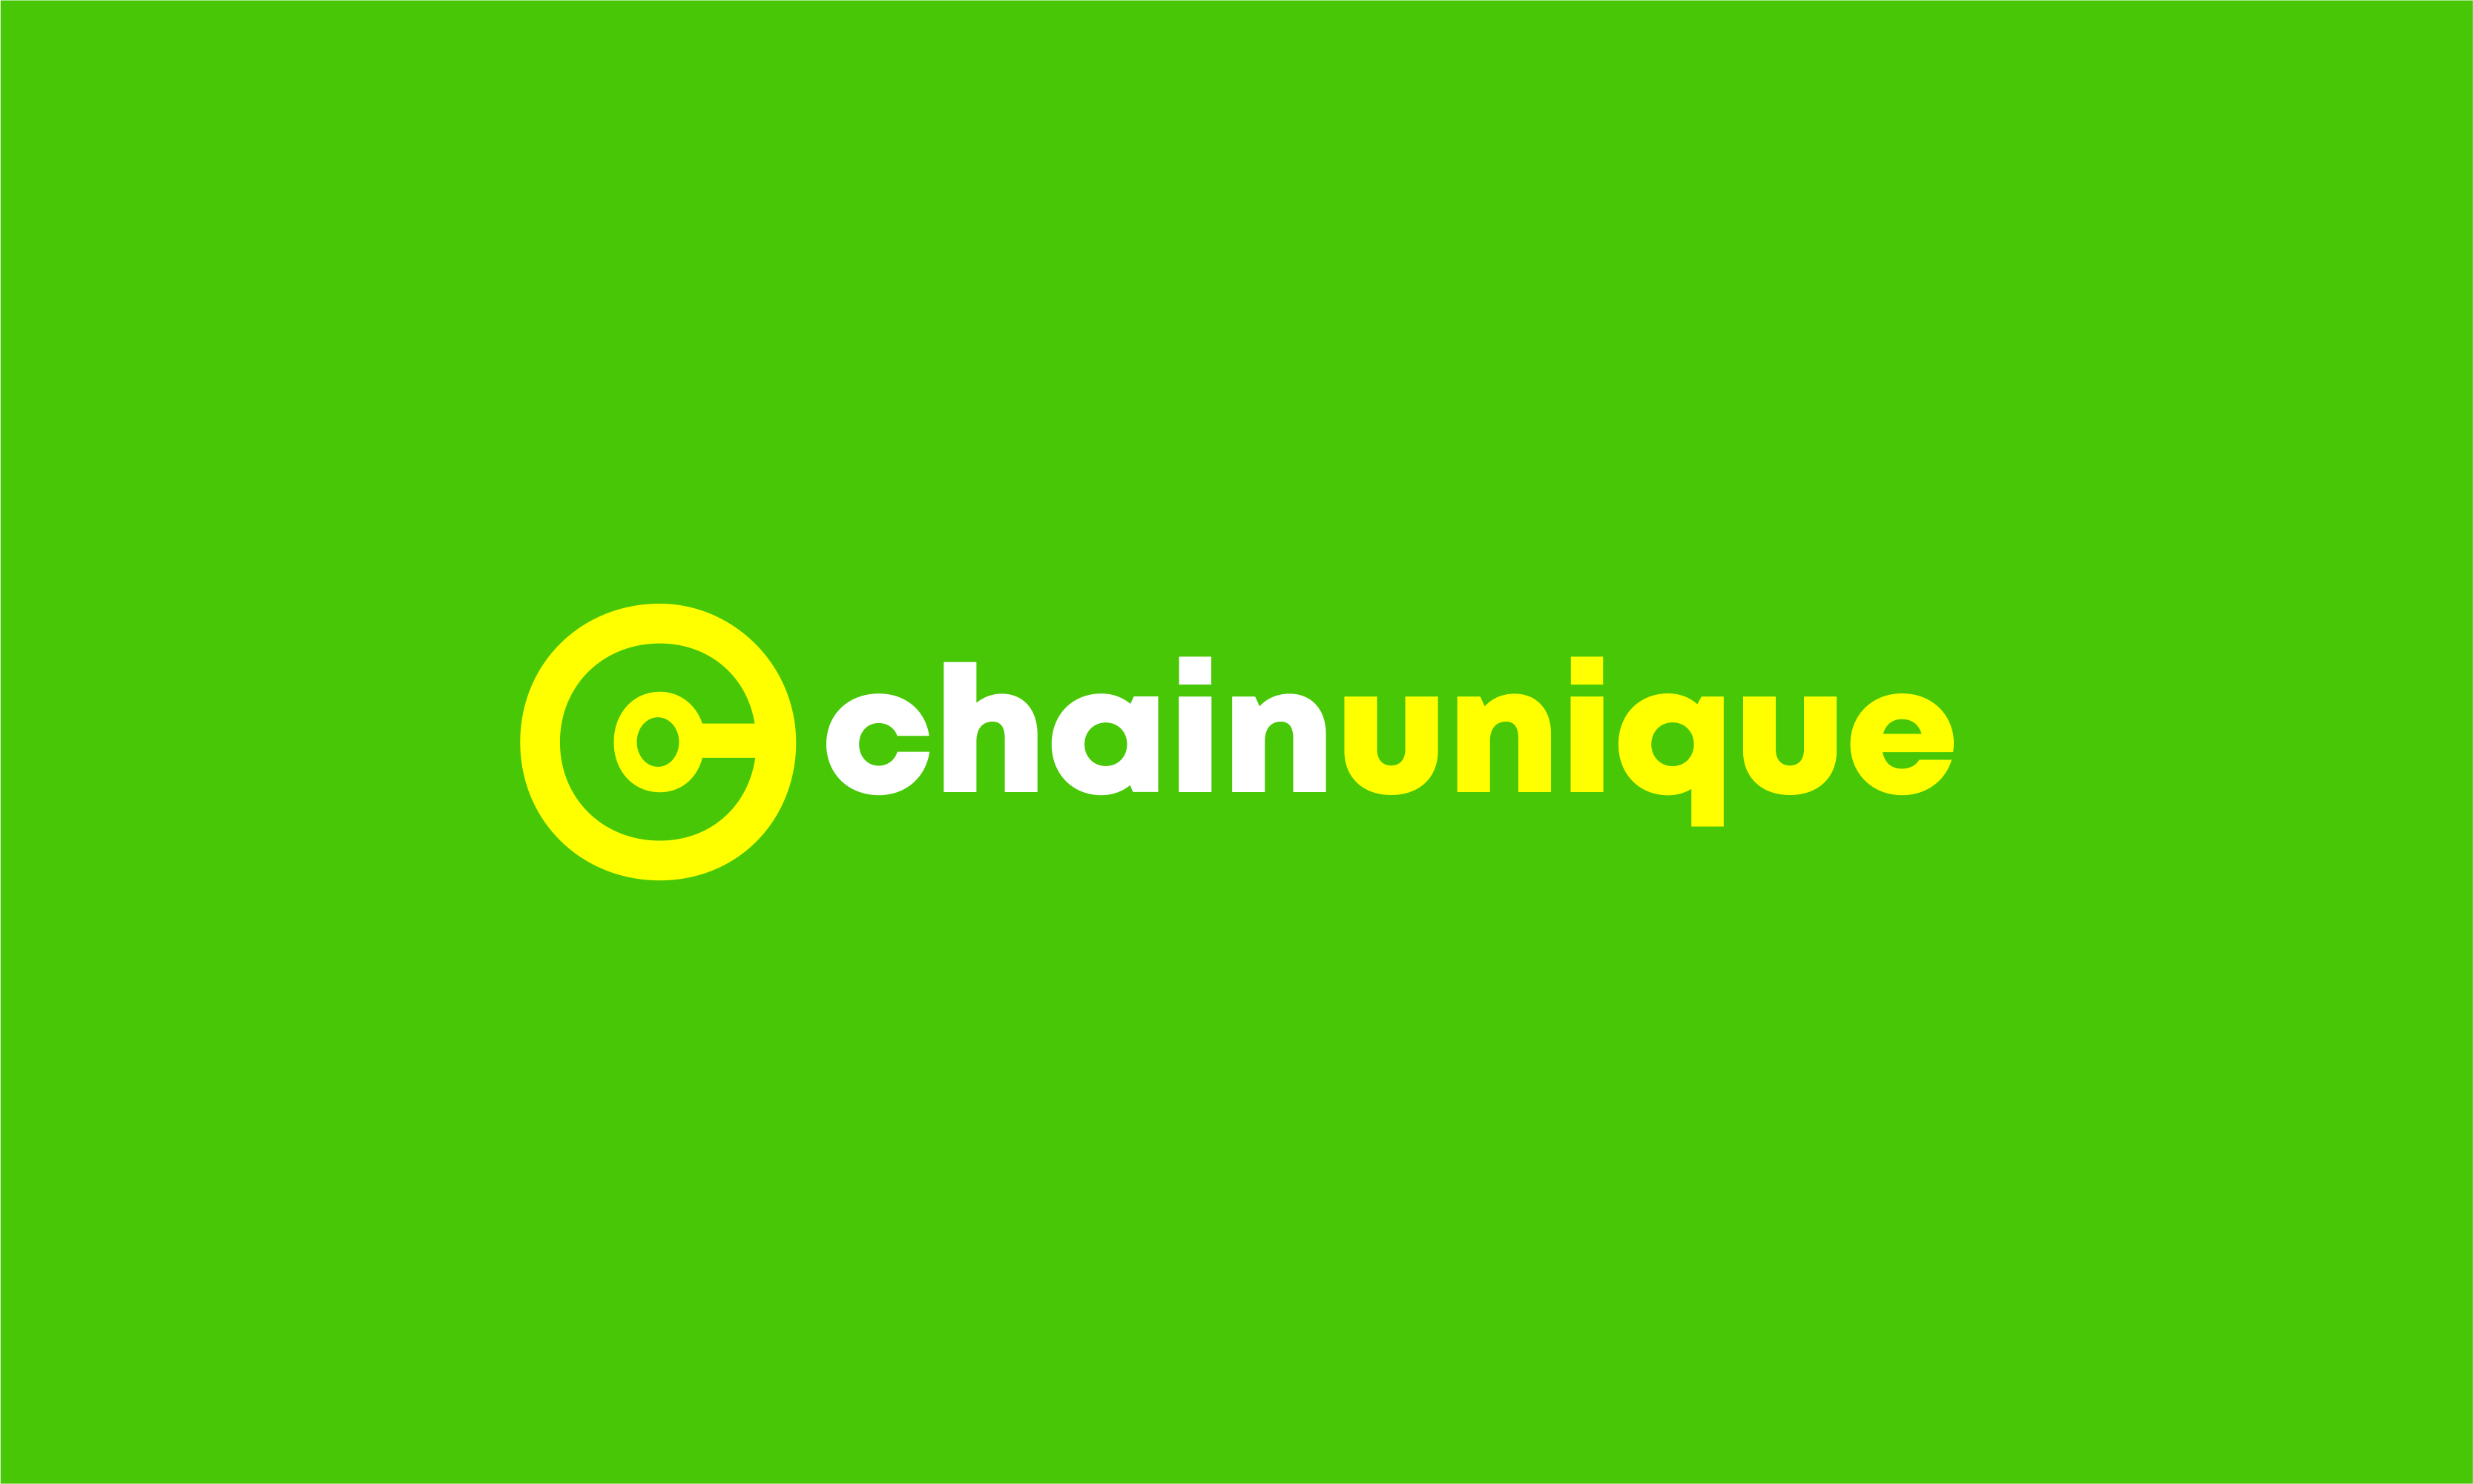 Chainunique